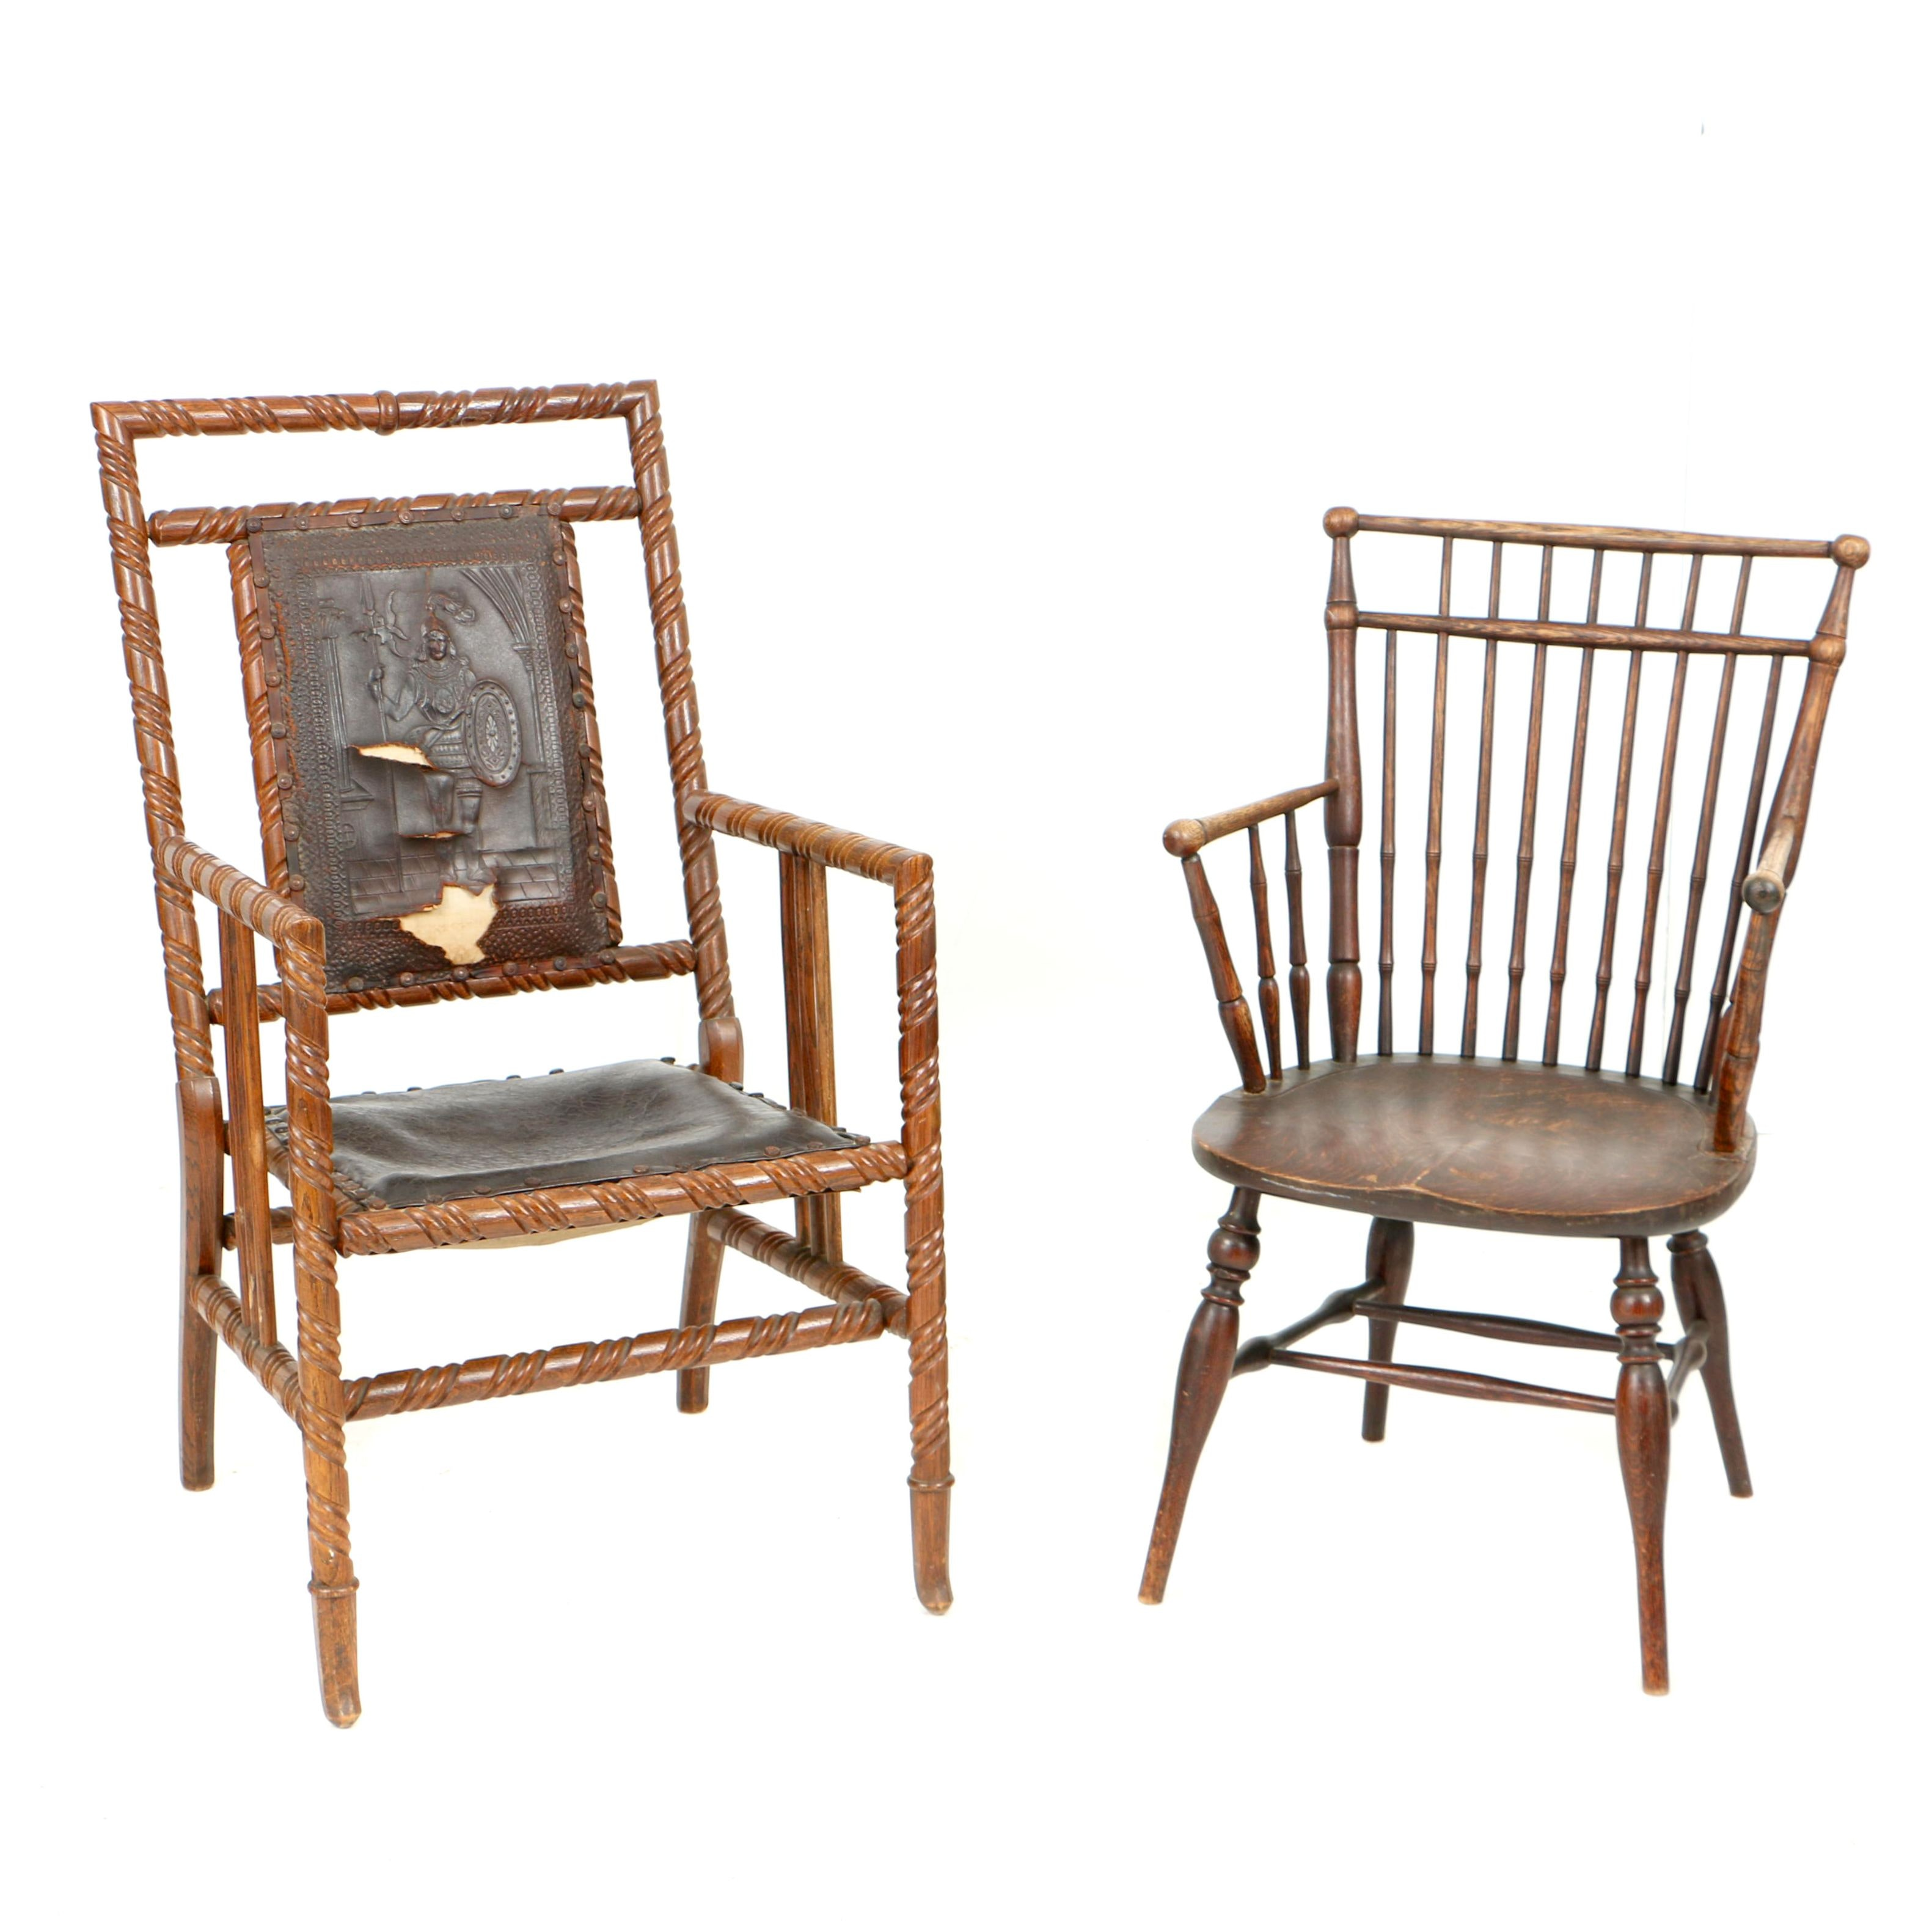 Early 20th Century Hunzinger-Style Armchair and Windsor Style Armchair